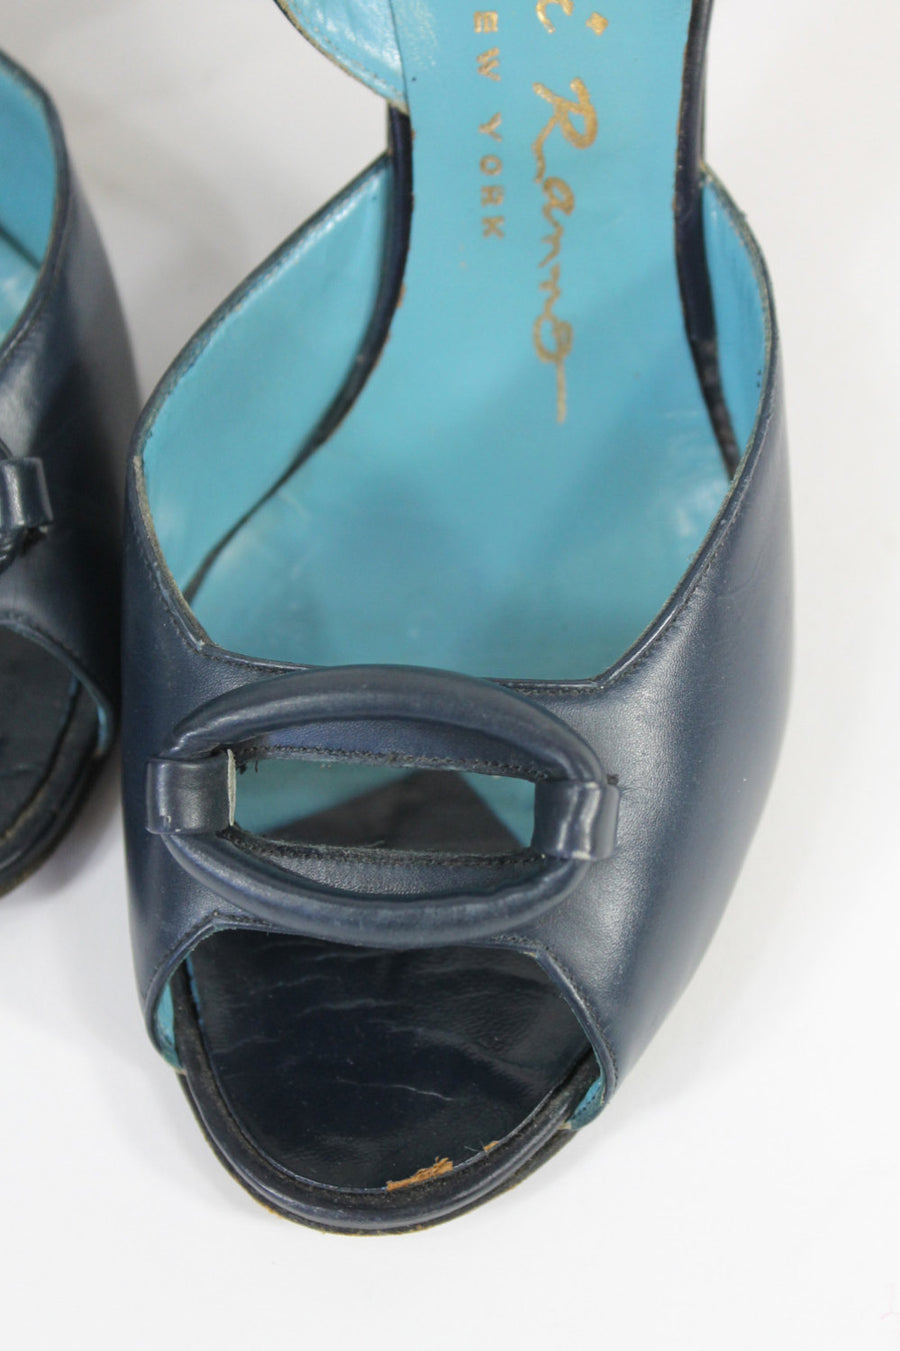 1940s peep toe shoes size 4.5 us | vintage slingback ocular window pumps | new in